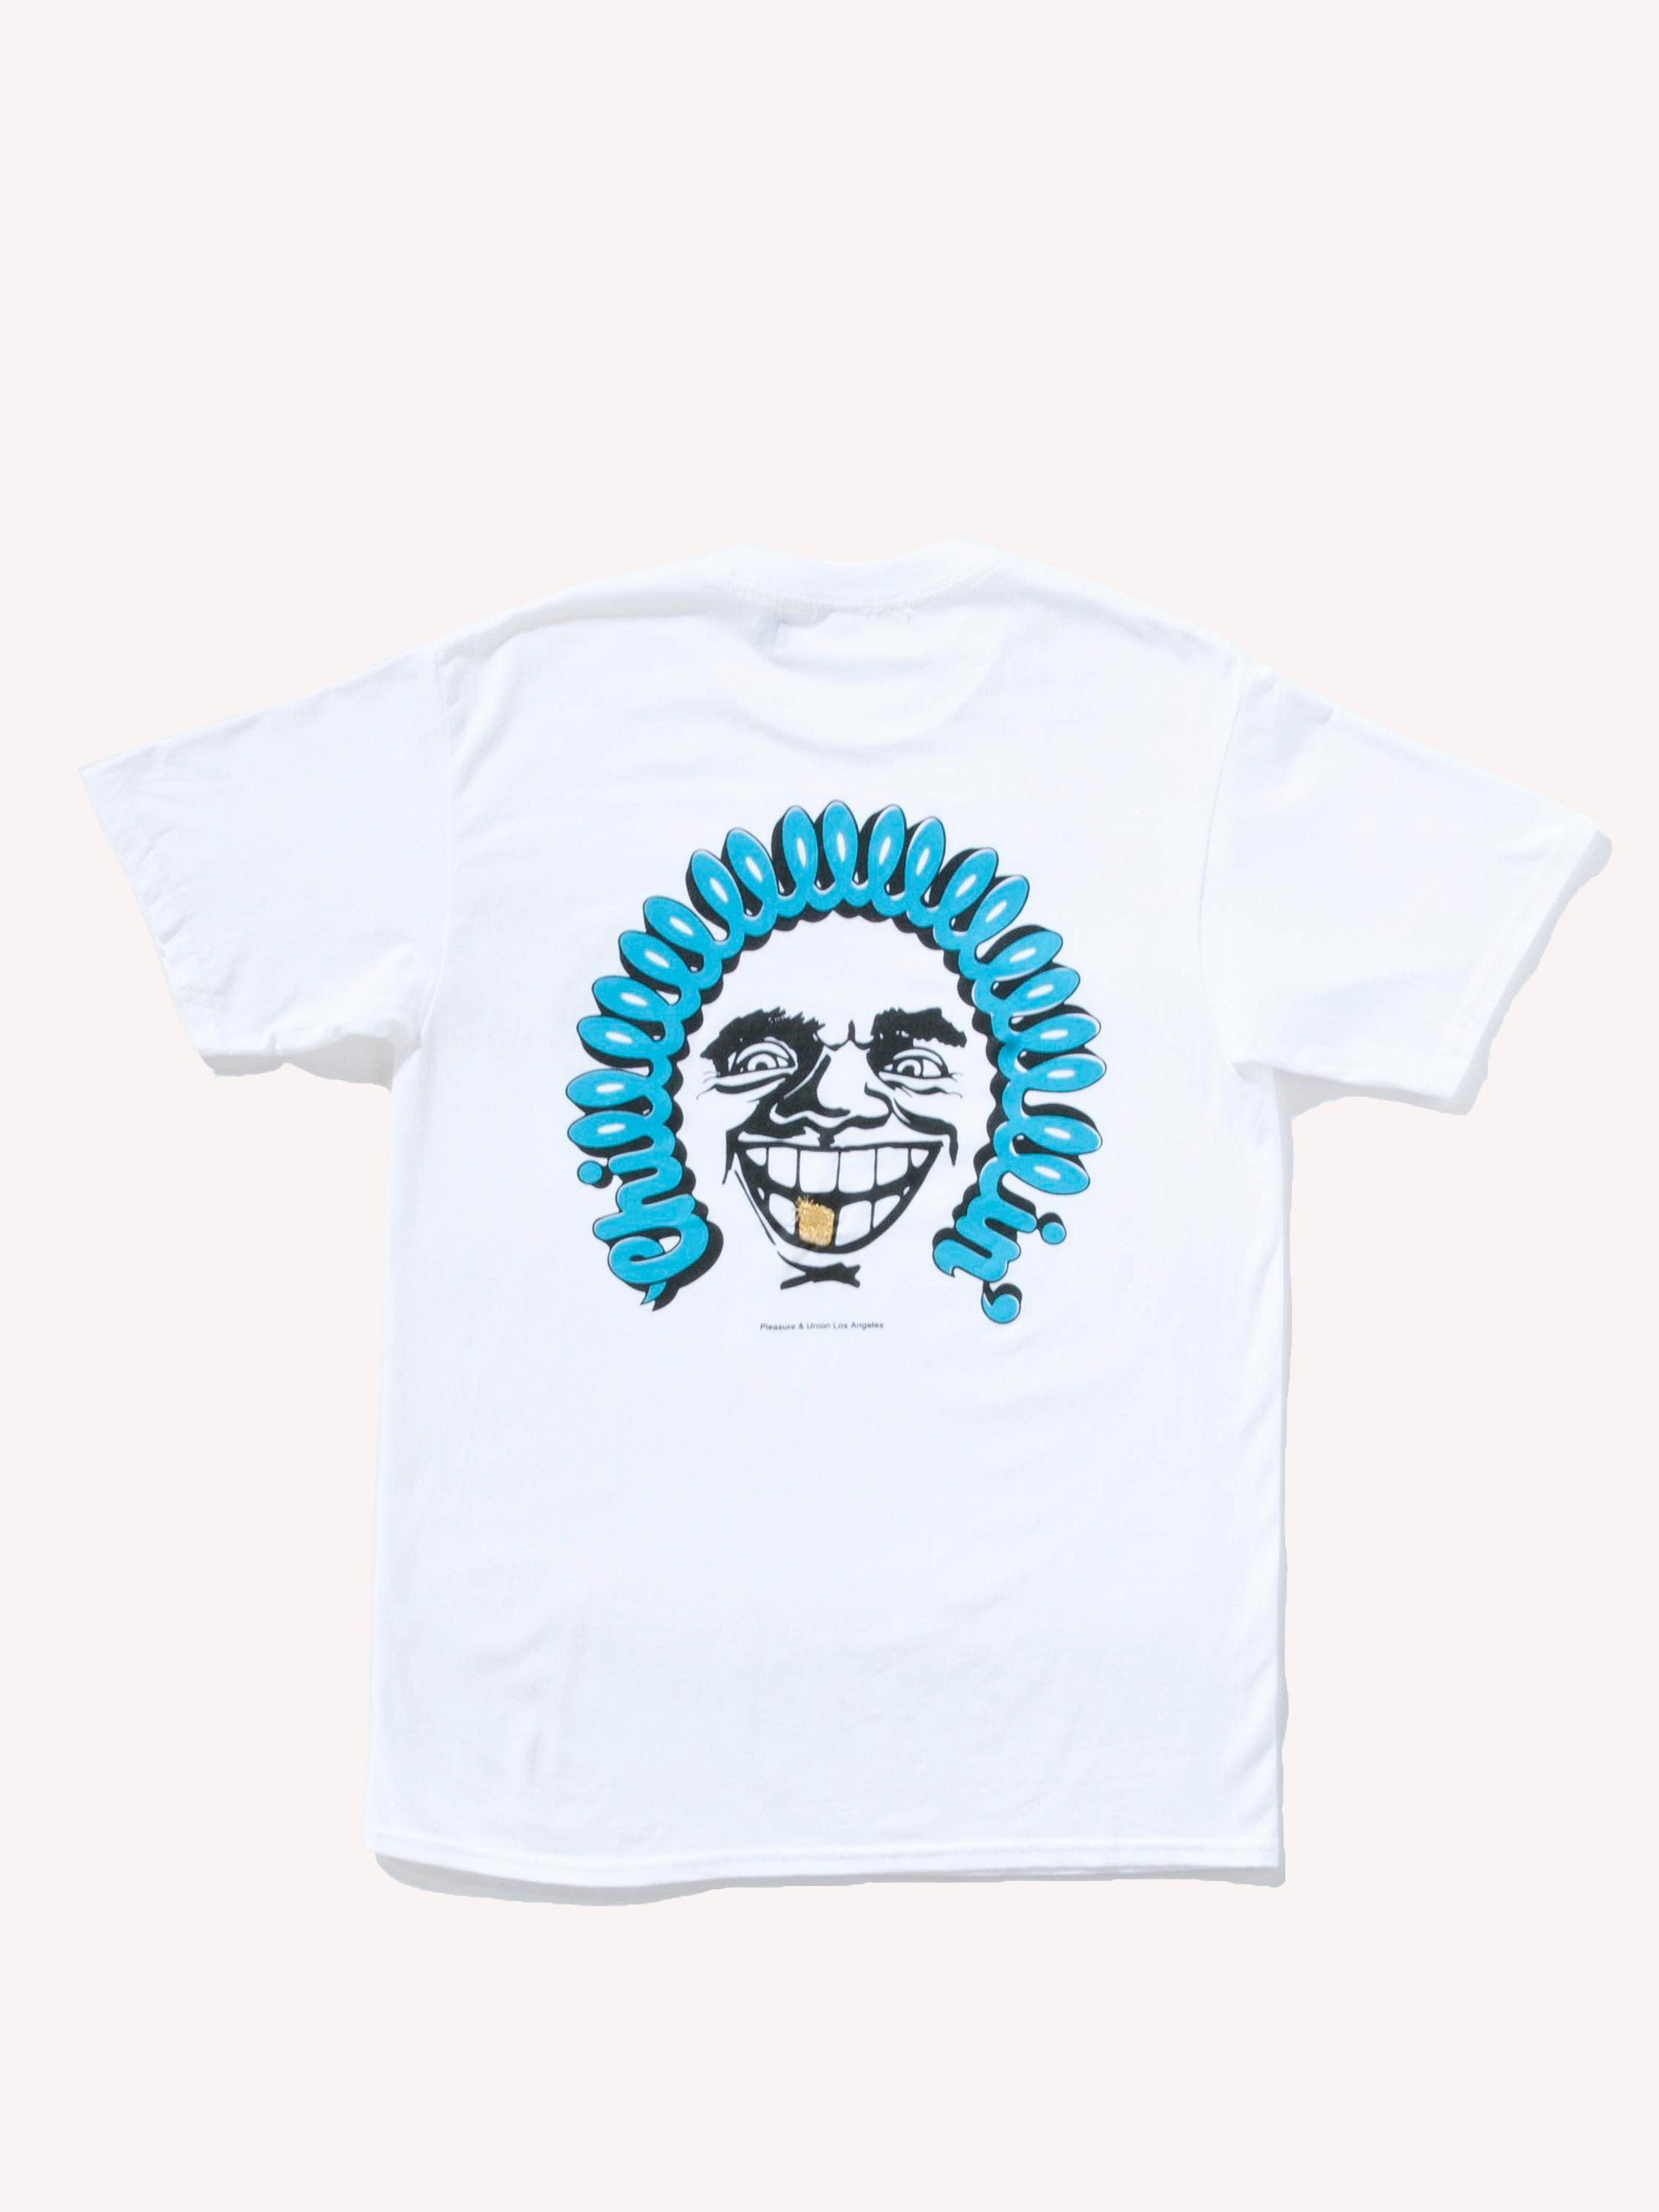 Pleasure x Union Chillin T-Shirt